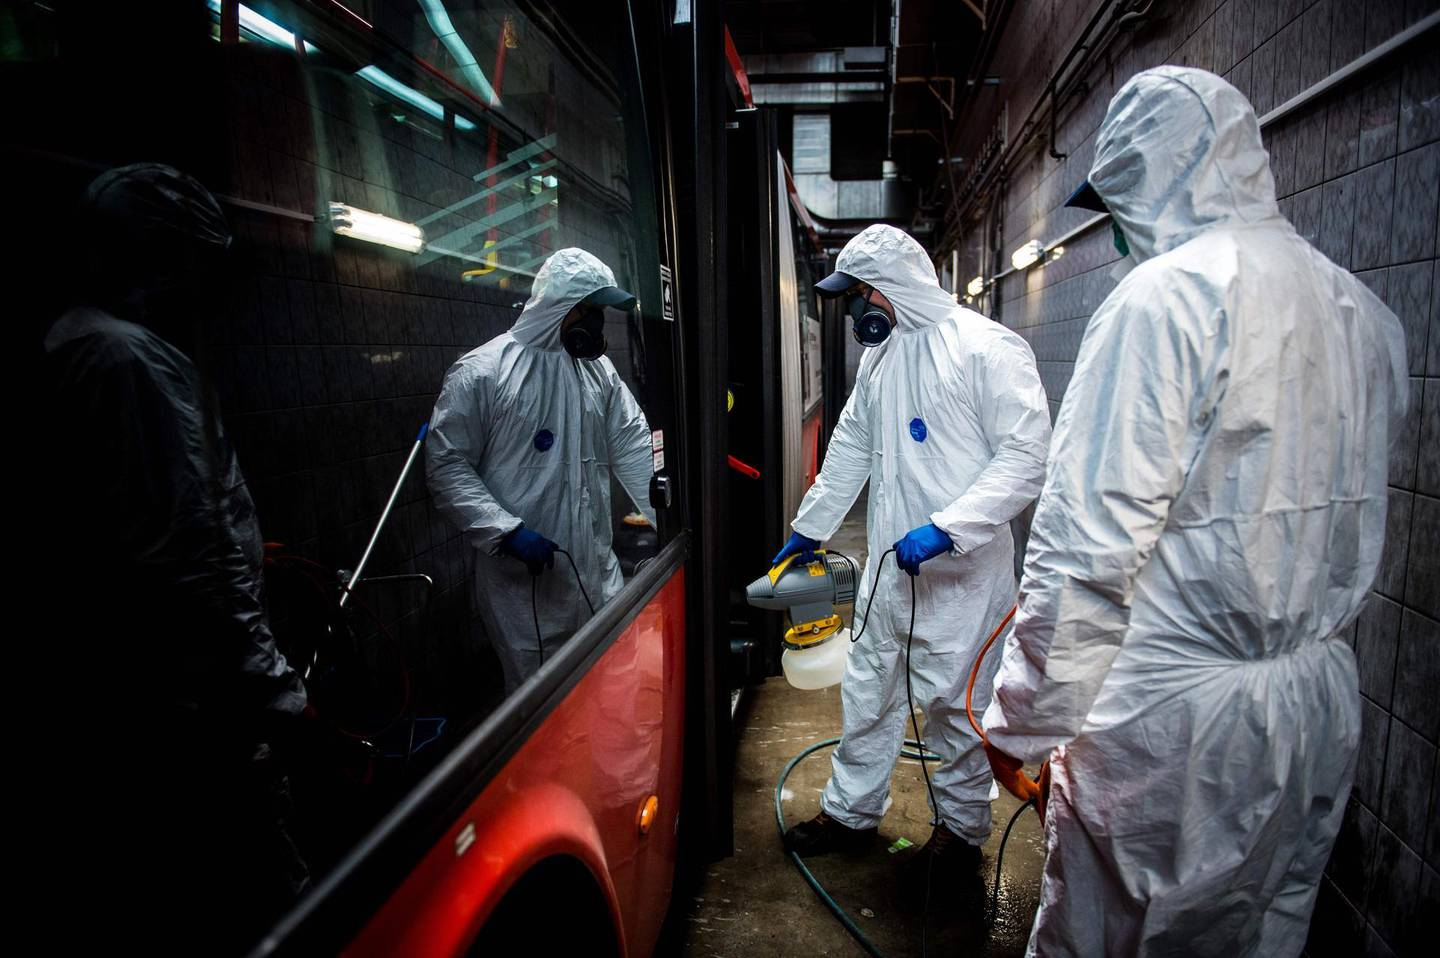 Workers wearing protective clothes disinfect an interior of a public bus in a bus-wash station at Transport Company of Bratislava city as part of precautionary measures against the spread of the new coronavirus COVID-19 in Bratislava, Slovakia on March 11, 2020. Many schools were closed and public events were cancelled due to the coronavirus outbreak in Slovakia as first seven cases of infection were confirmed. / AFP / VLADIMIR SIMICEK